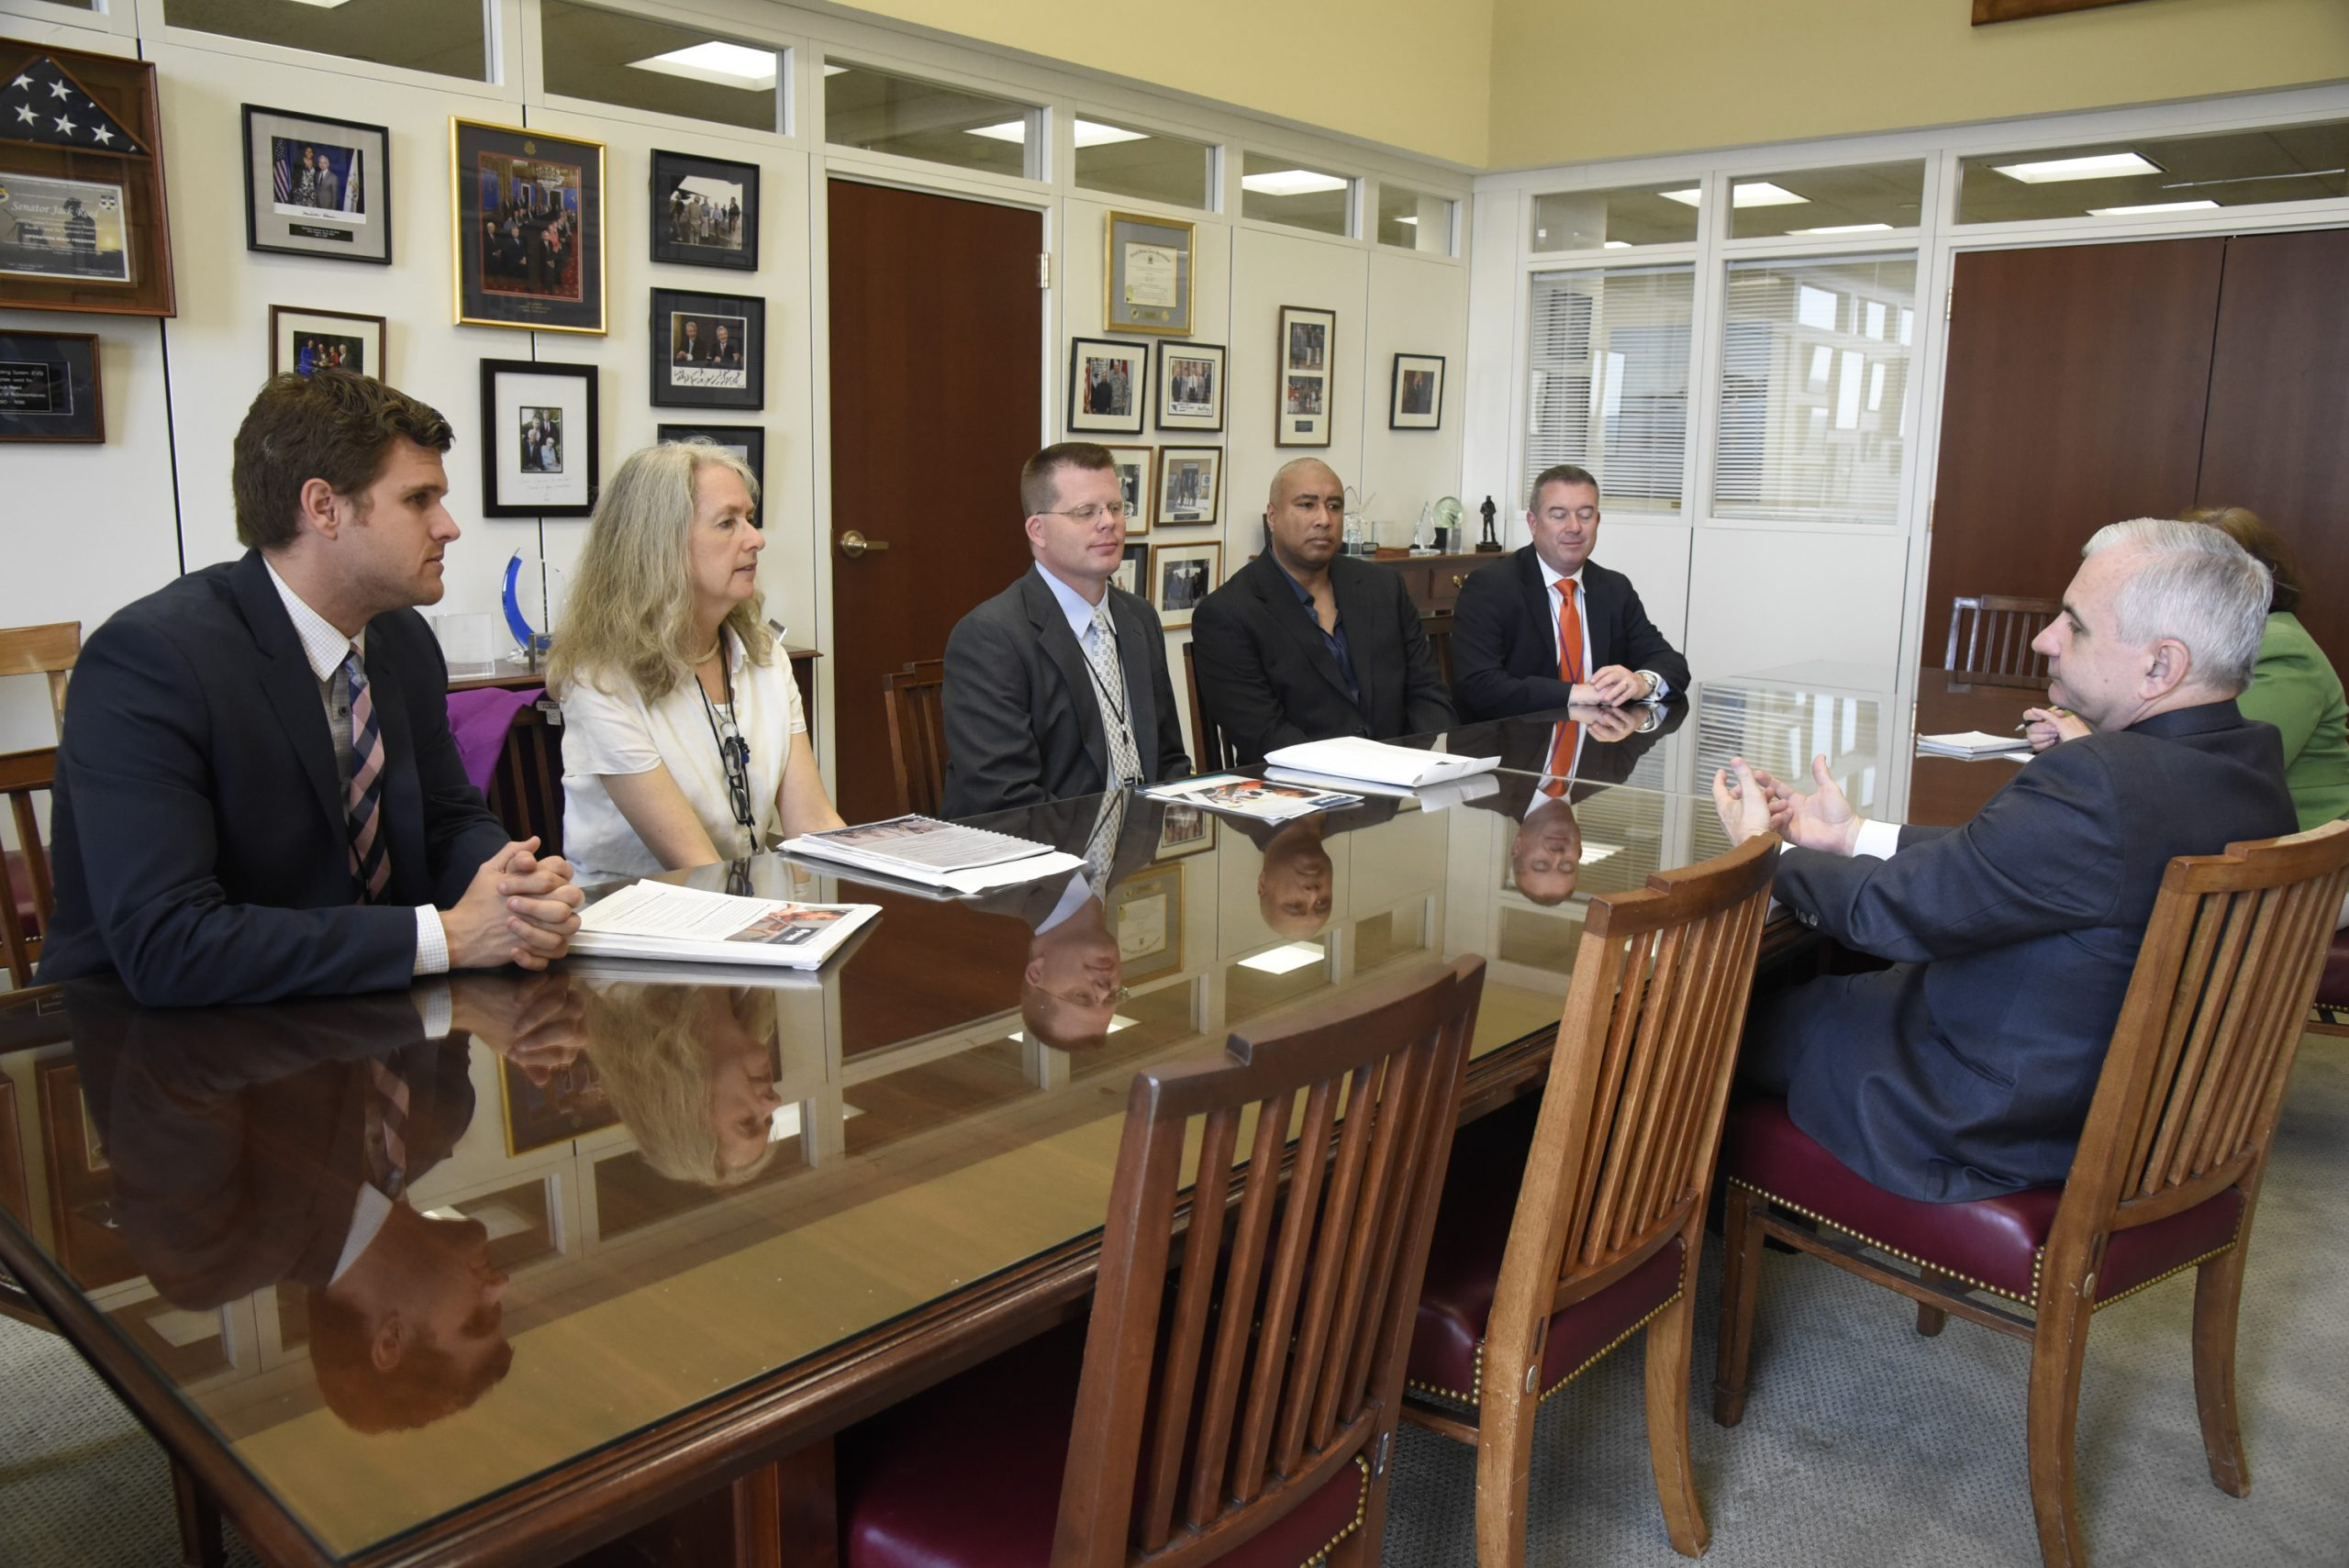 Bernie Williams with other members of NAMM meet with Sen. Jack Reed (D-RI) during the NAMM, CMA(Country Music Association) and VH1 Music Advocacy Day in US Capitol on May 25, 2016 in Washington D.C.